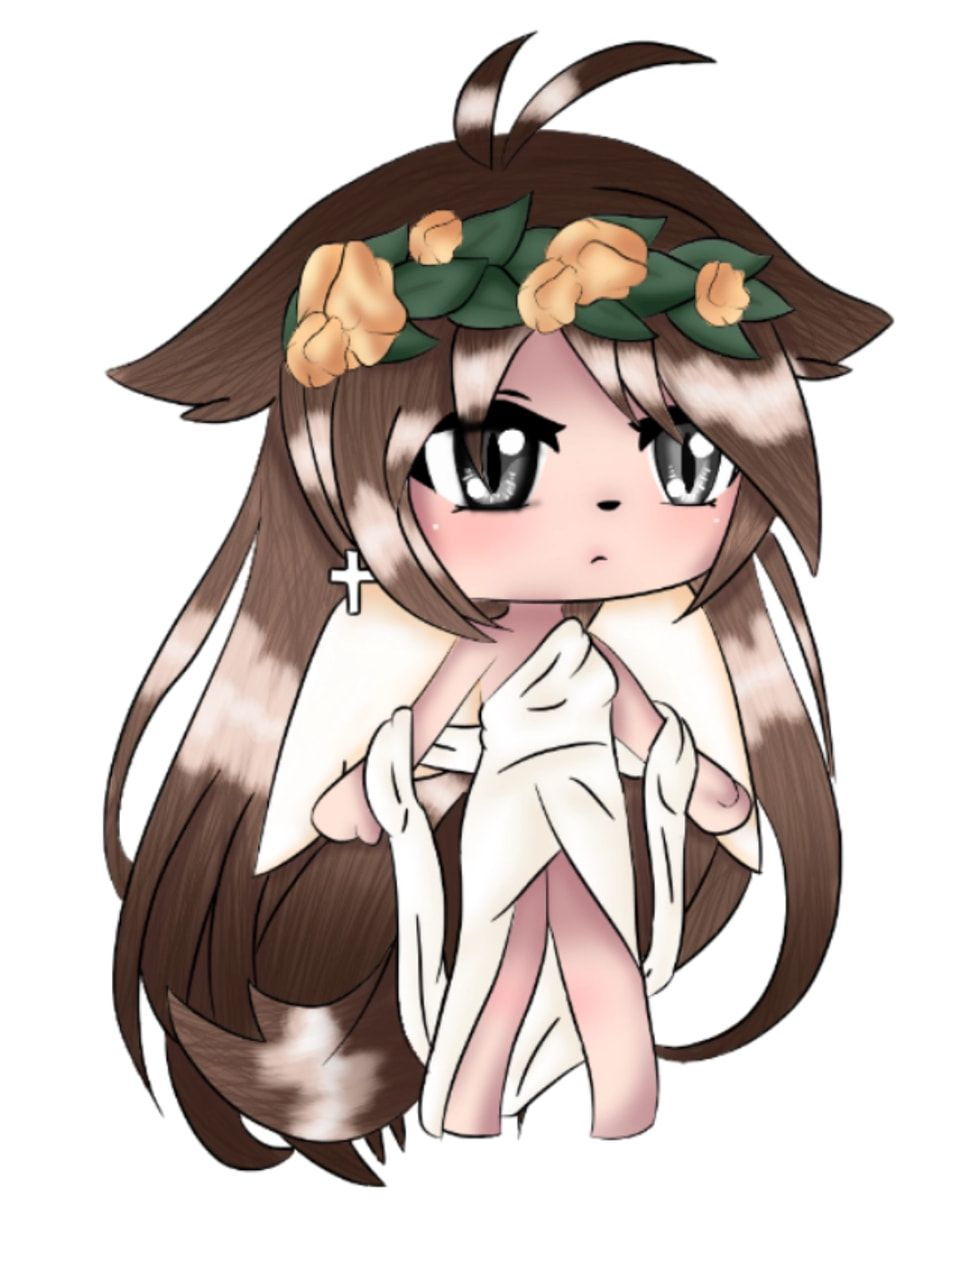 Sketch From Sony Anime Wolf Girl Cute Profile Pictures Kawaii Chibi